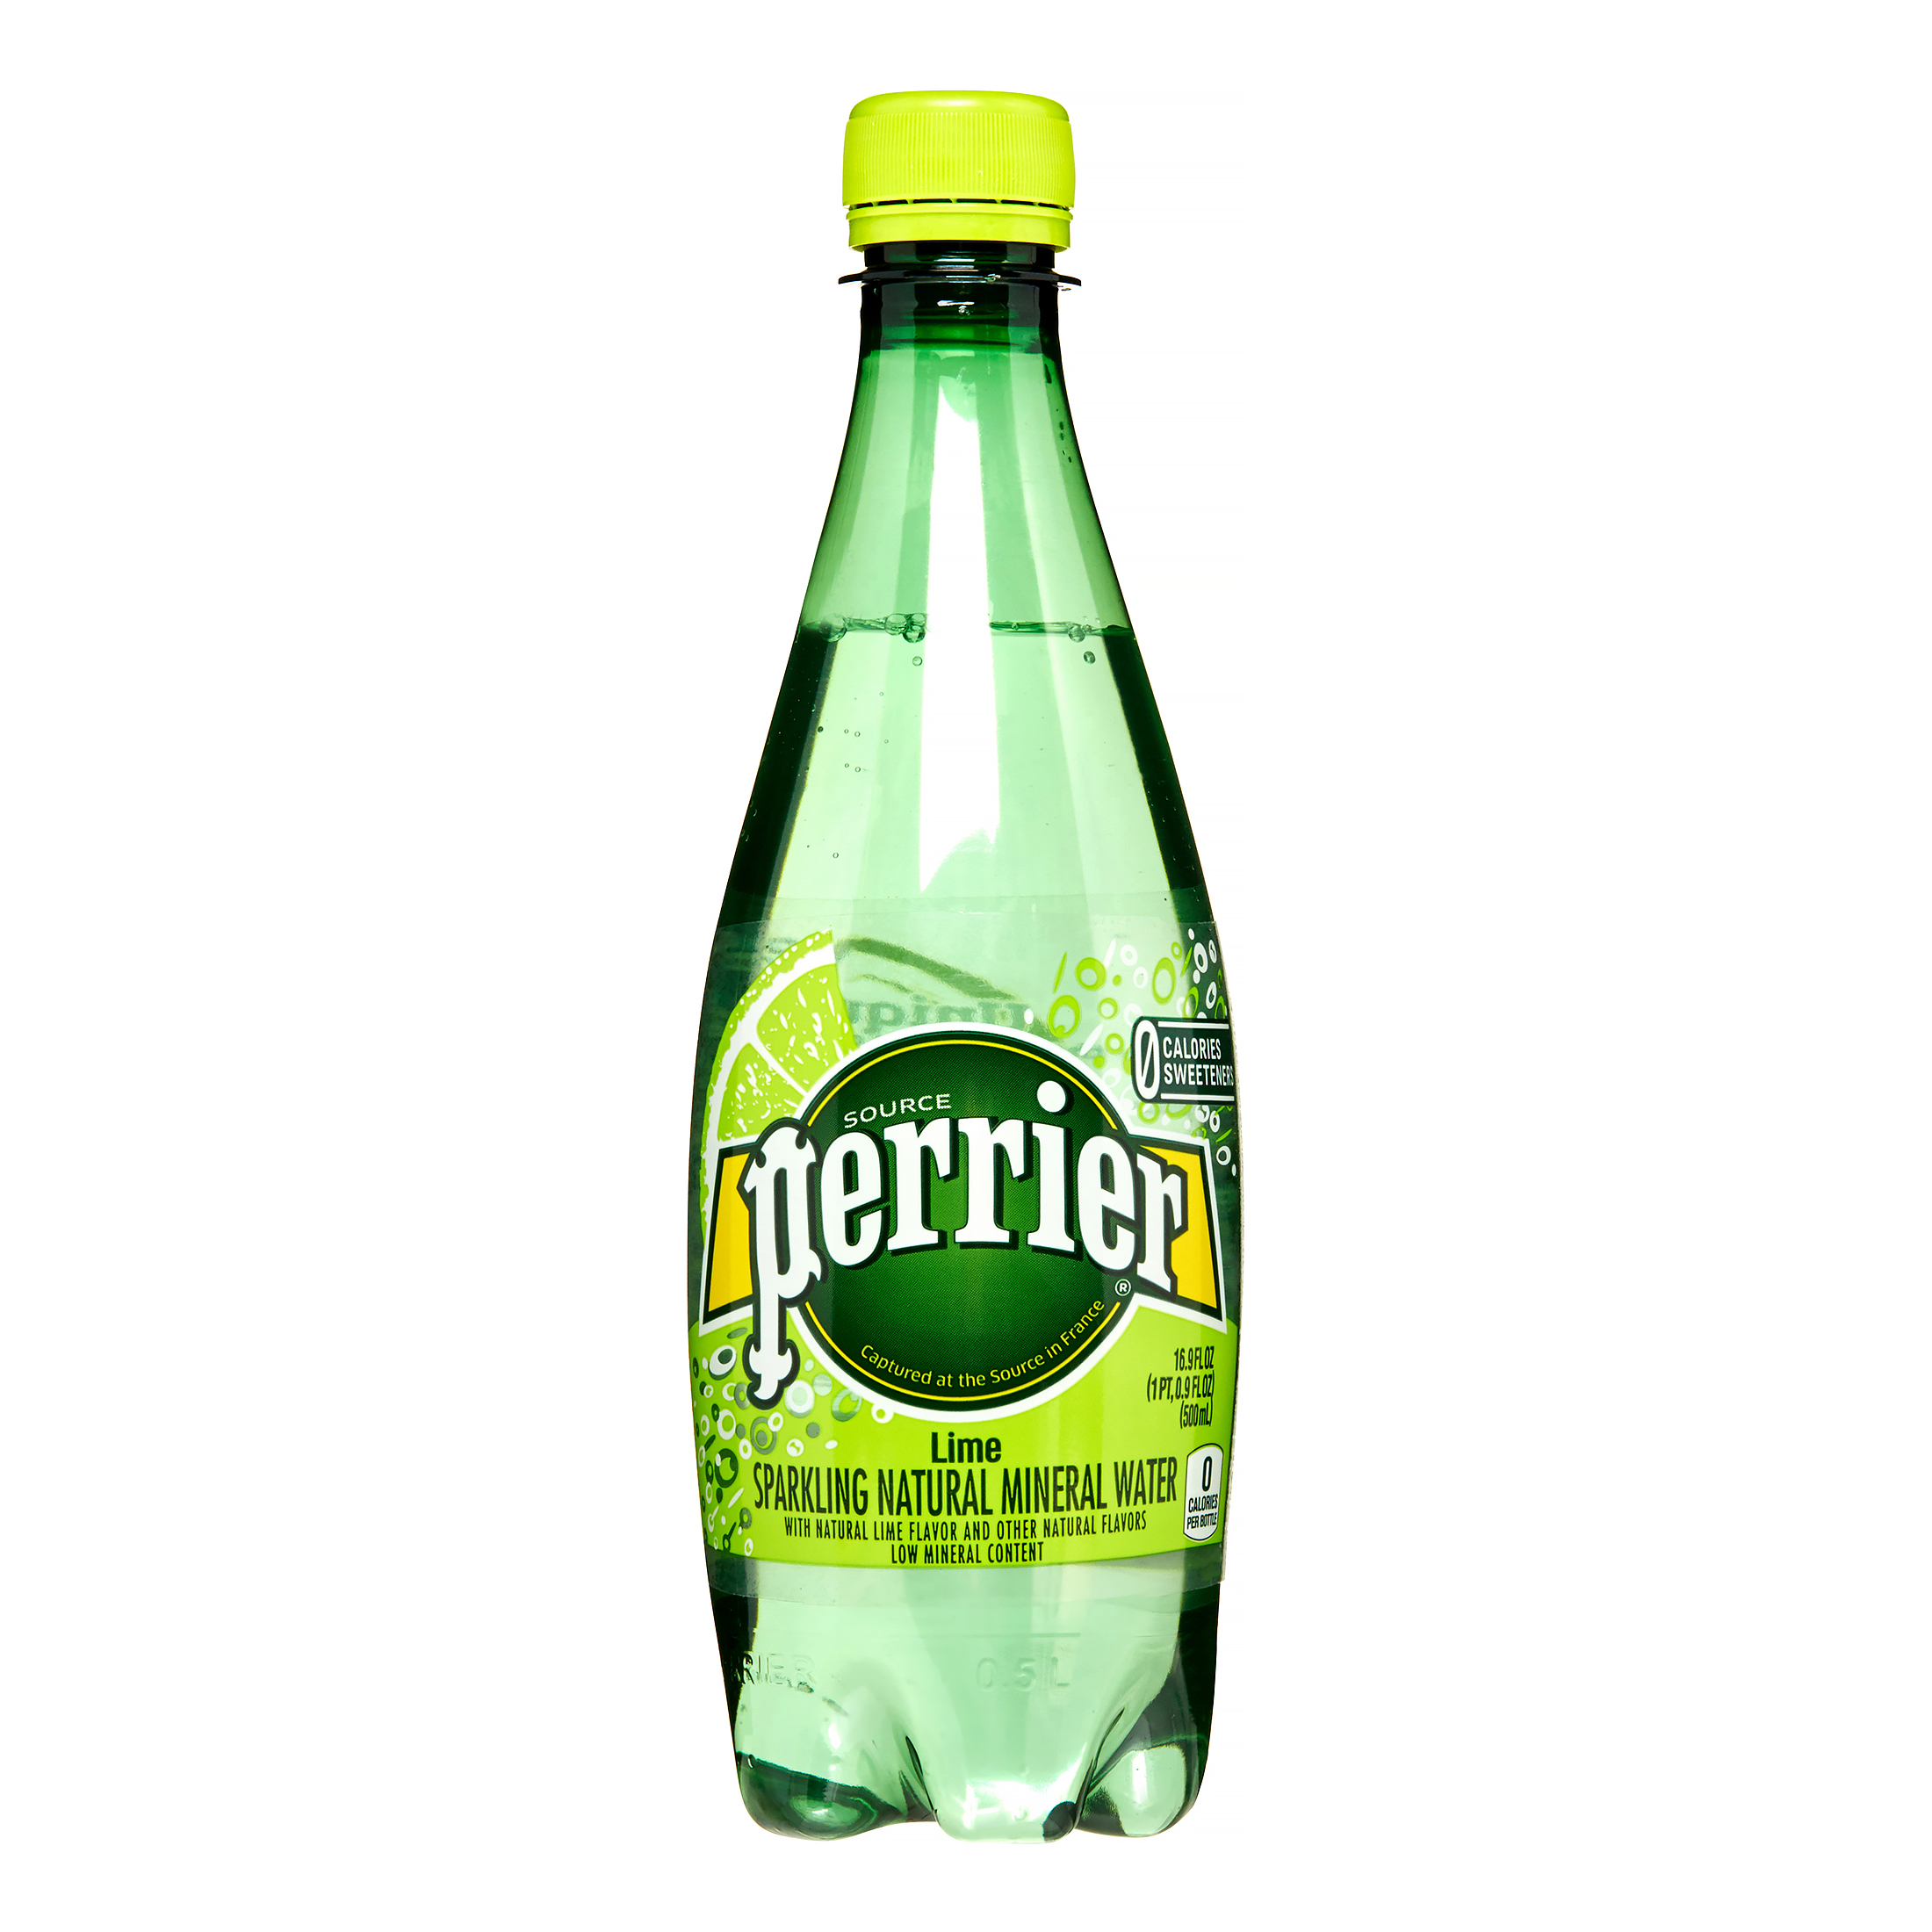 Perrier Sparkling Natural Mineral Water, Lime, 16.9 Fl Oz, 24 Count